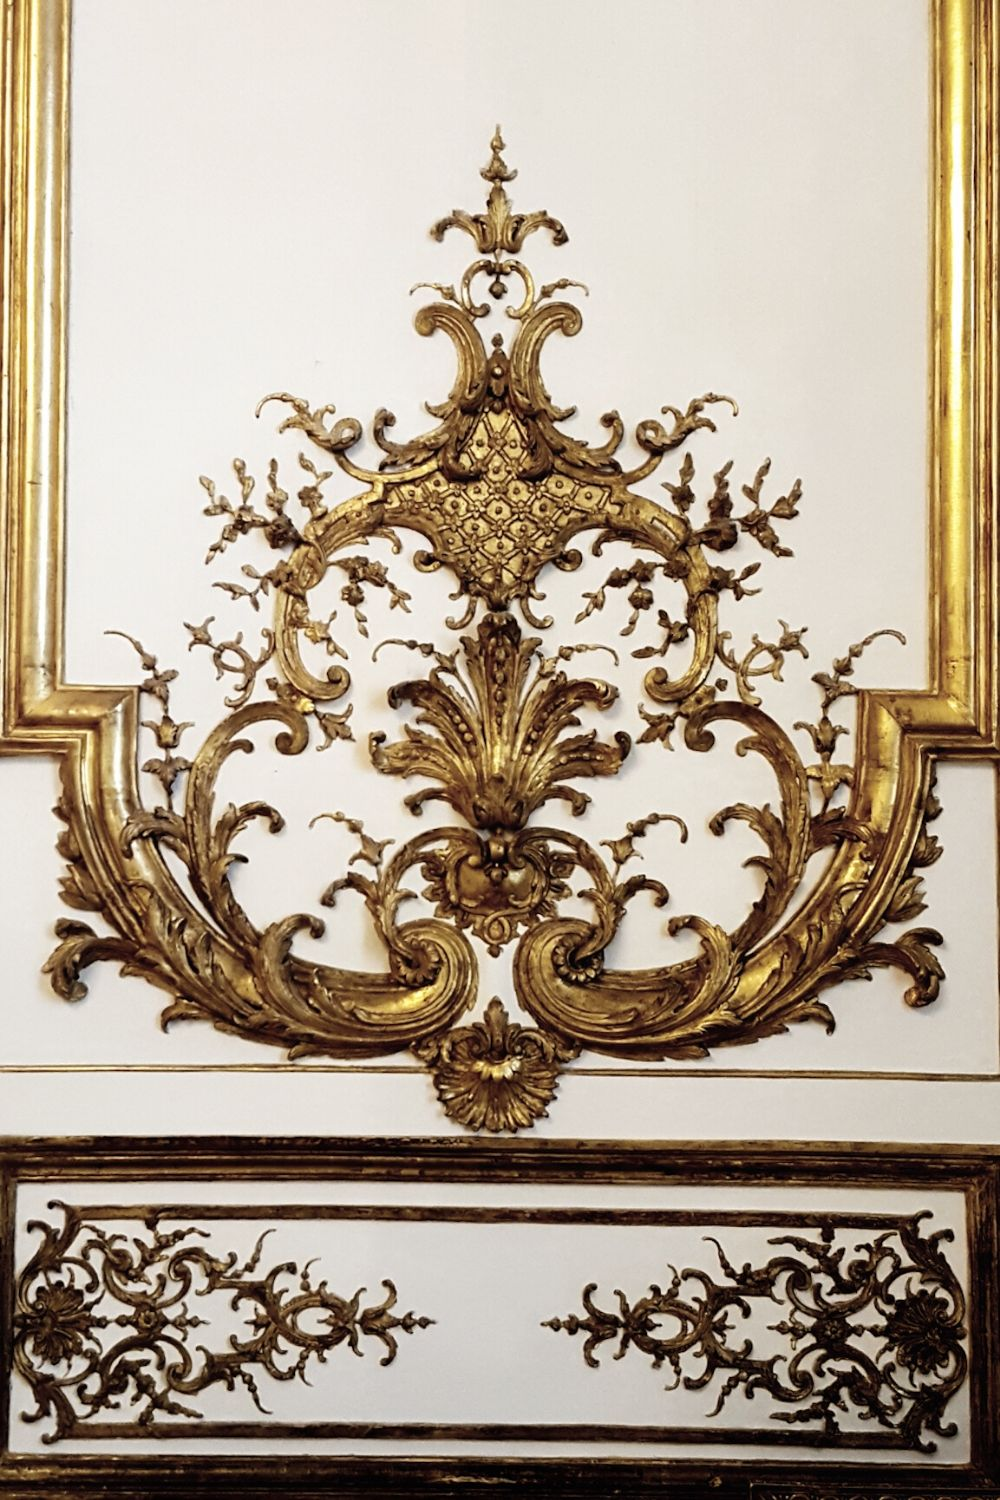 Gold ornate interior design from Chateau de Chantilly